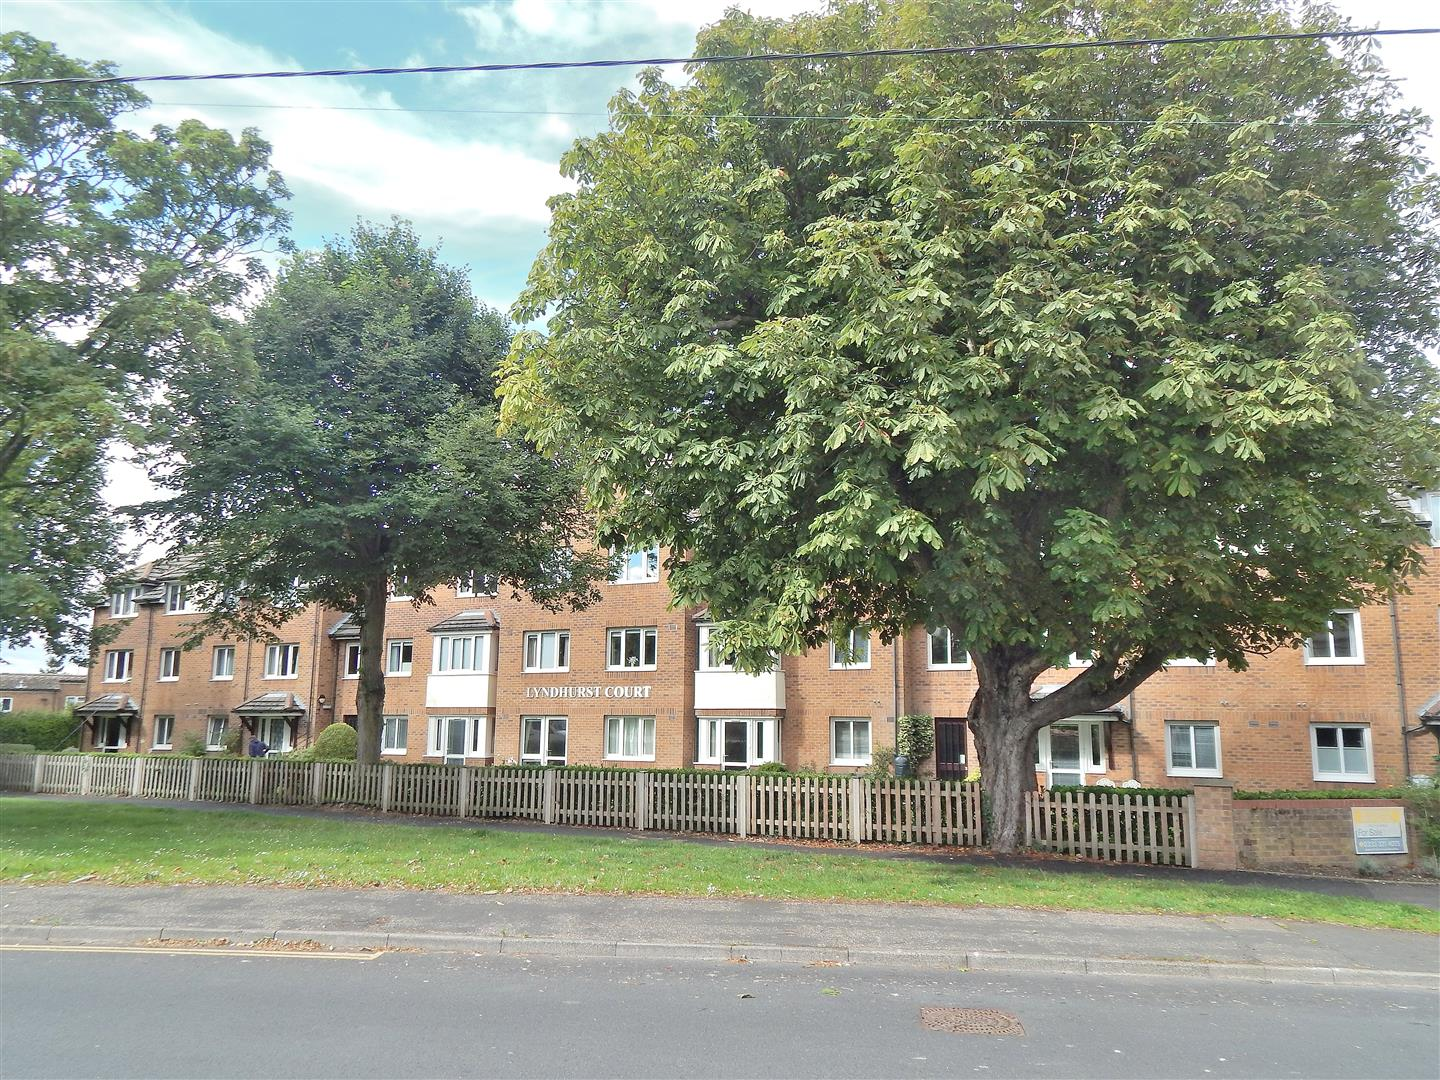 2 bed flat for sale in Hunstanton, PE36 5AE 0